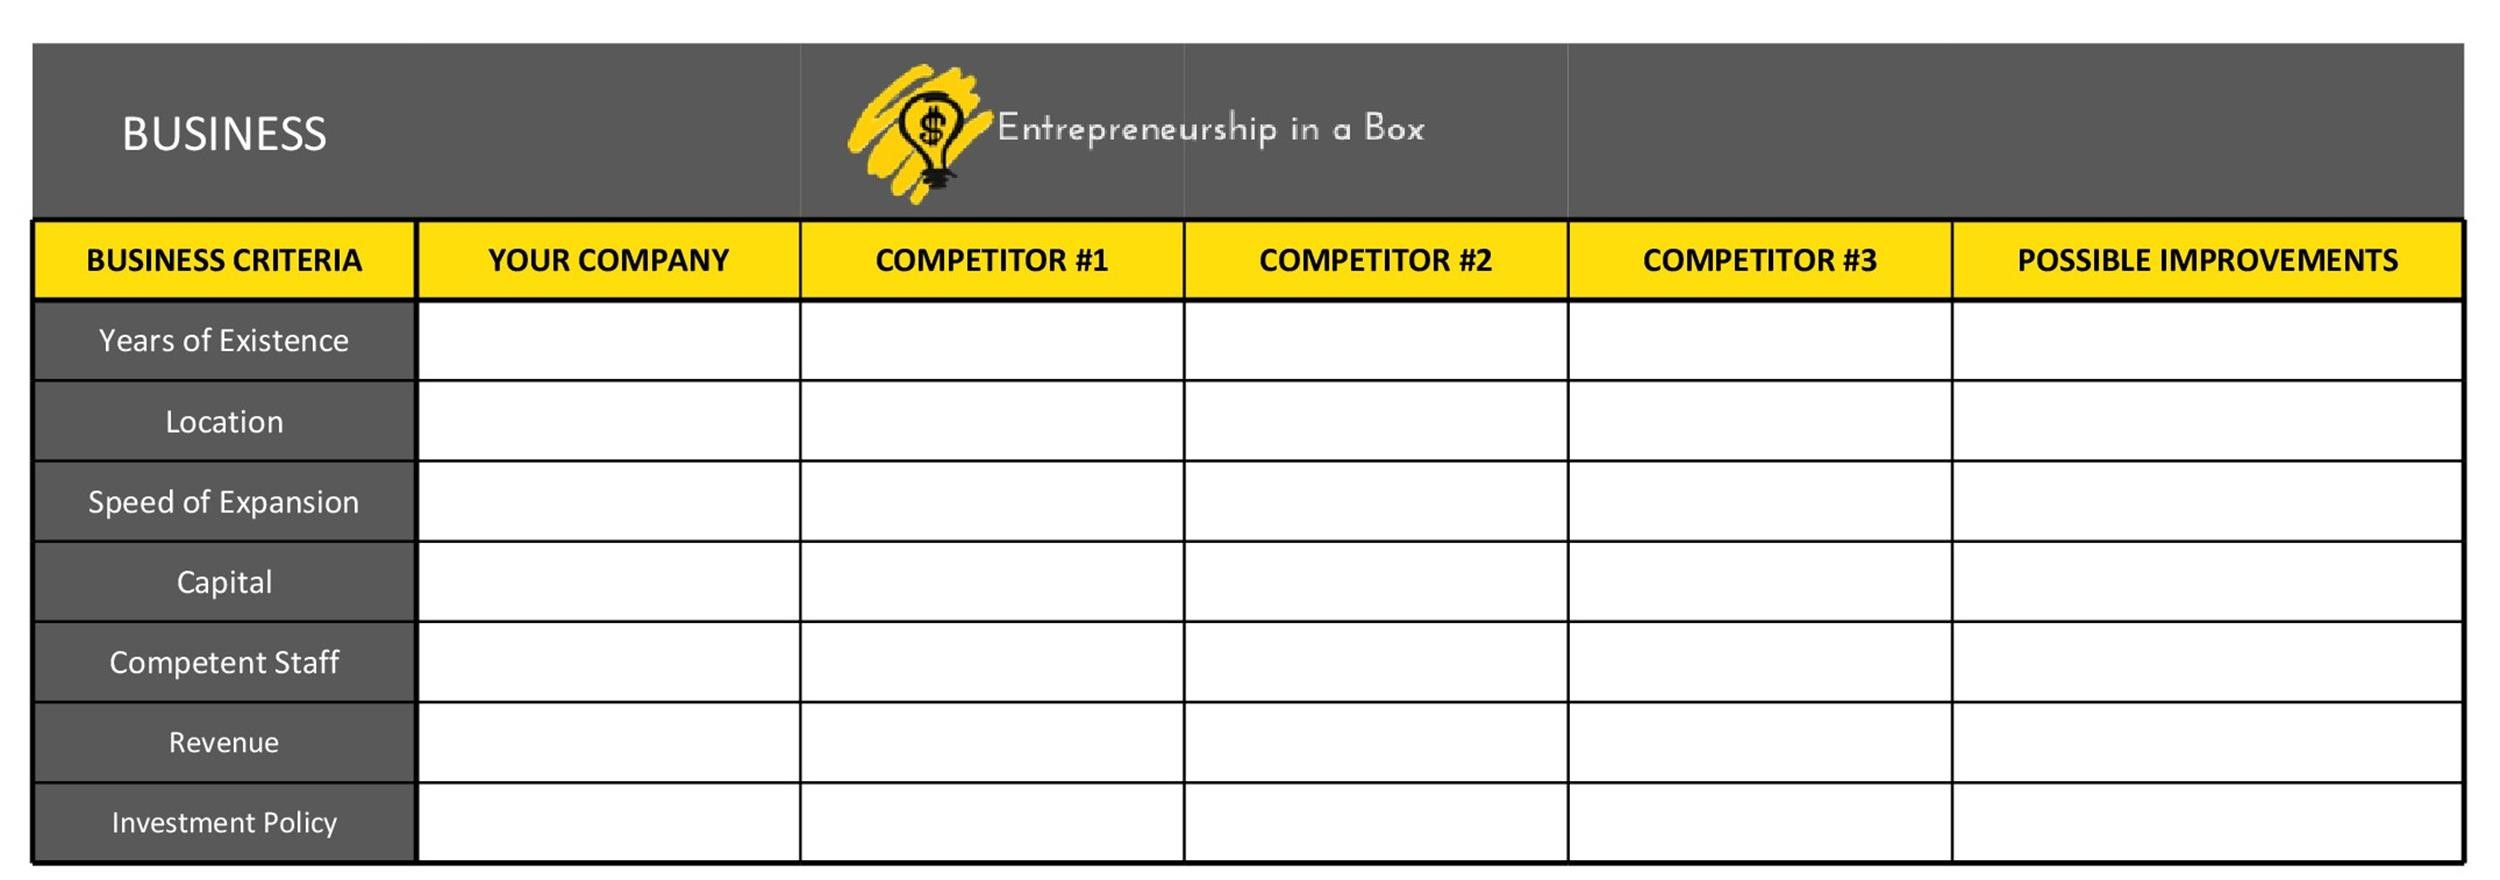 Printable Competitive Analysis Template 08  Competitive Analysis Templates